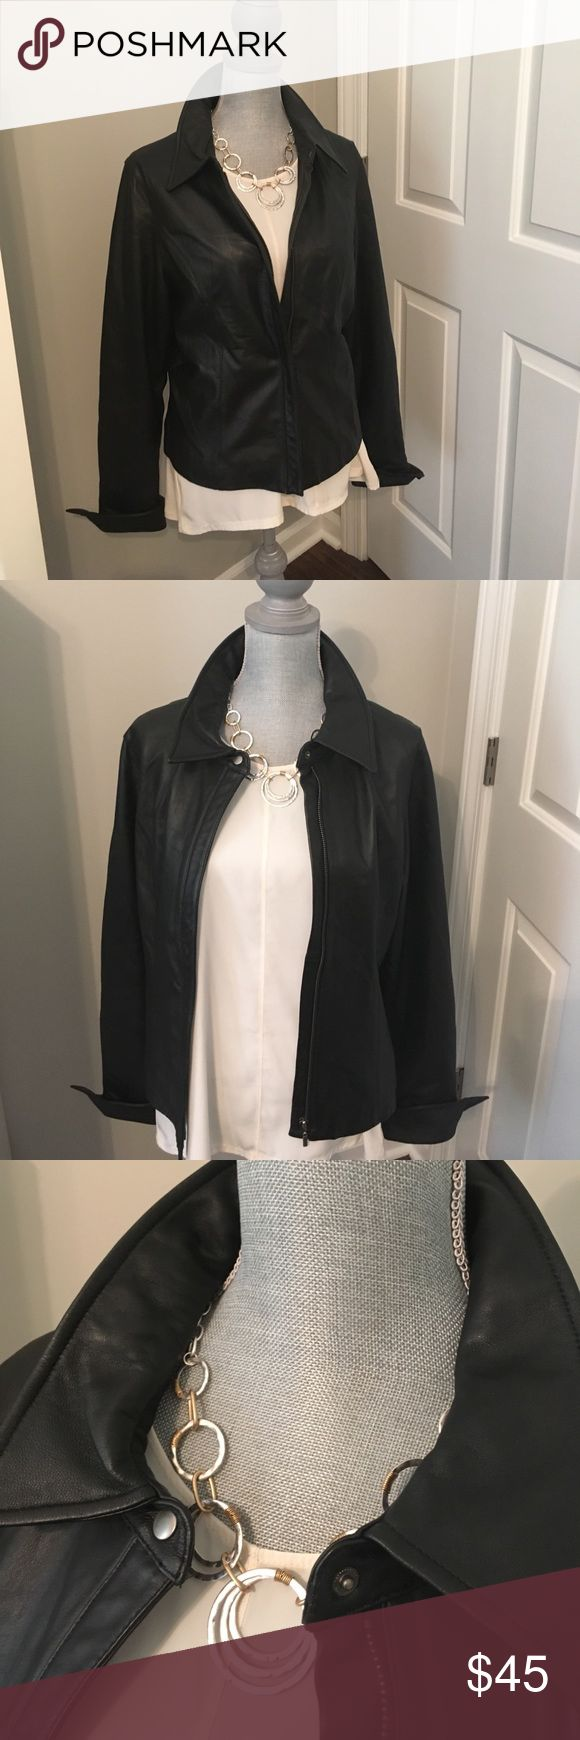 "Ladies Black Leather Jacket Black leather, fully lined jacket with covered zippered front.  Collar and tuxedo cuffs. 20"" armpit to armpit and 12 1/2"" under arm to hem. Gently used condition and very clean. attention Jackets & Coats Blazers"